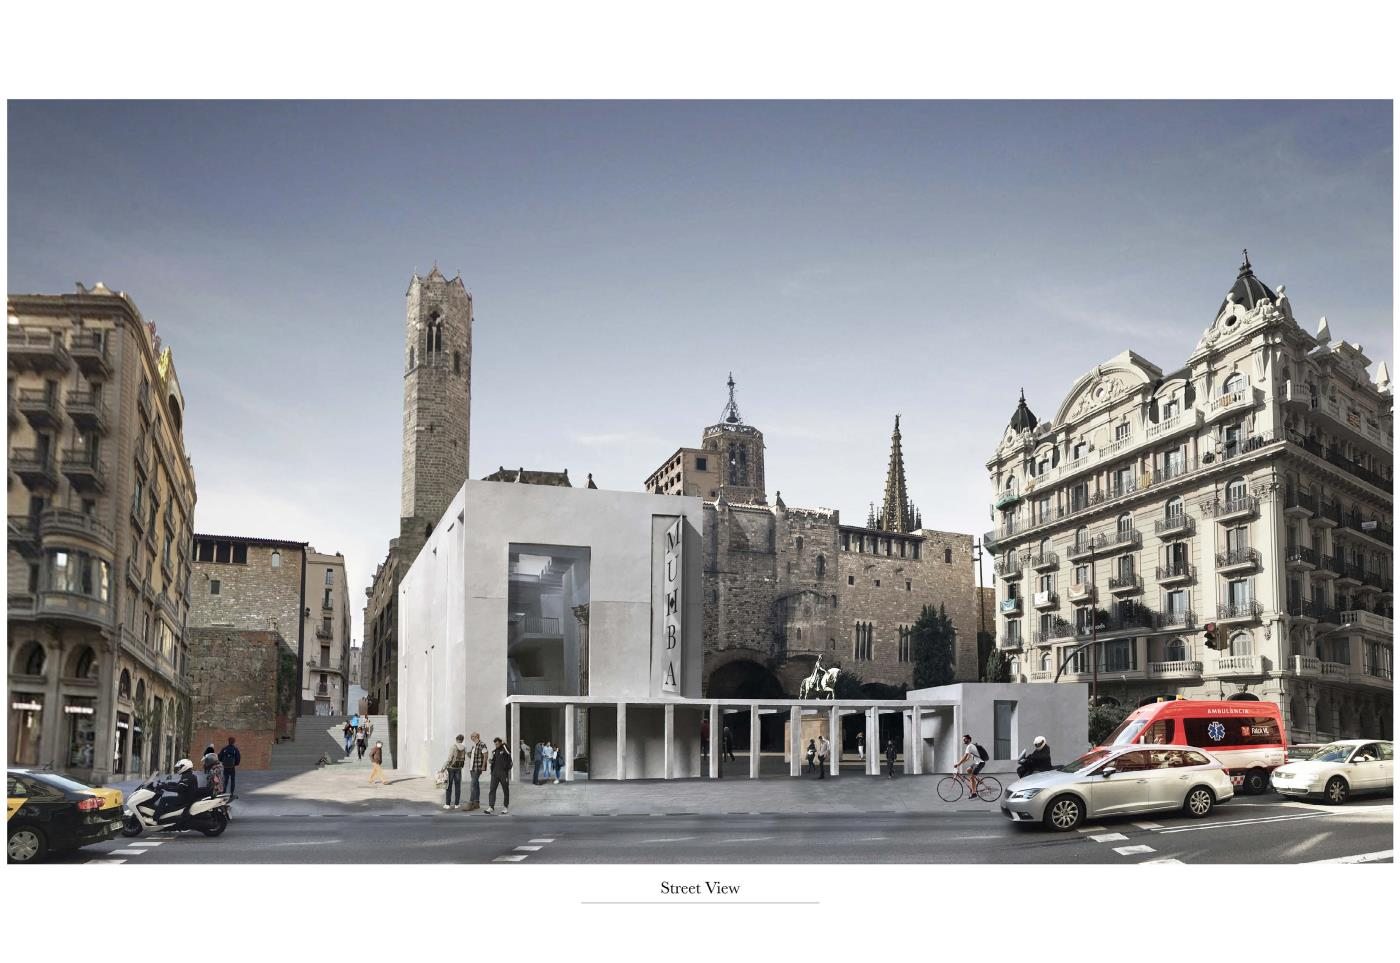 City Thresholds: Defining an Entrance to Museu d'Història de Barcelona